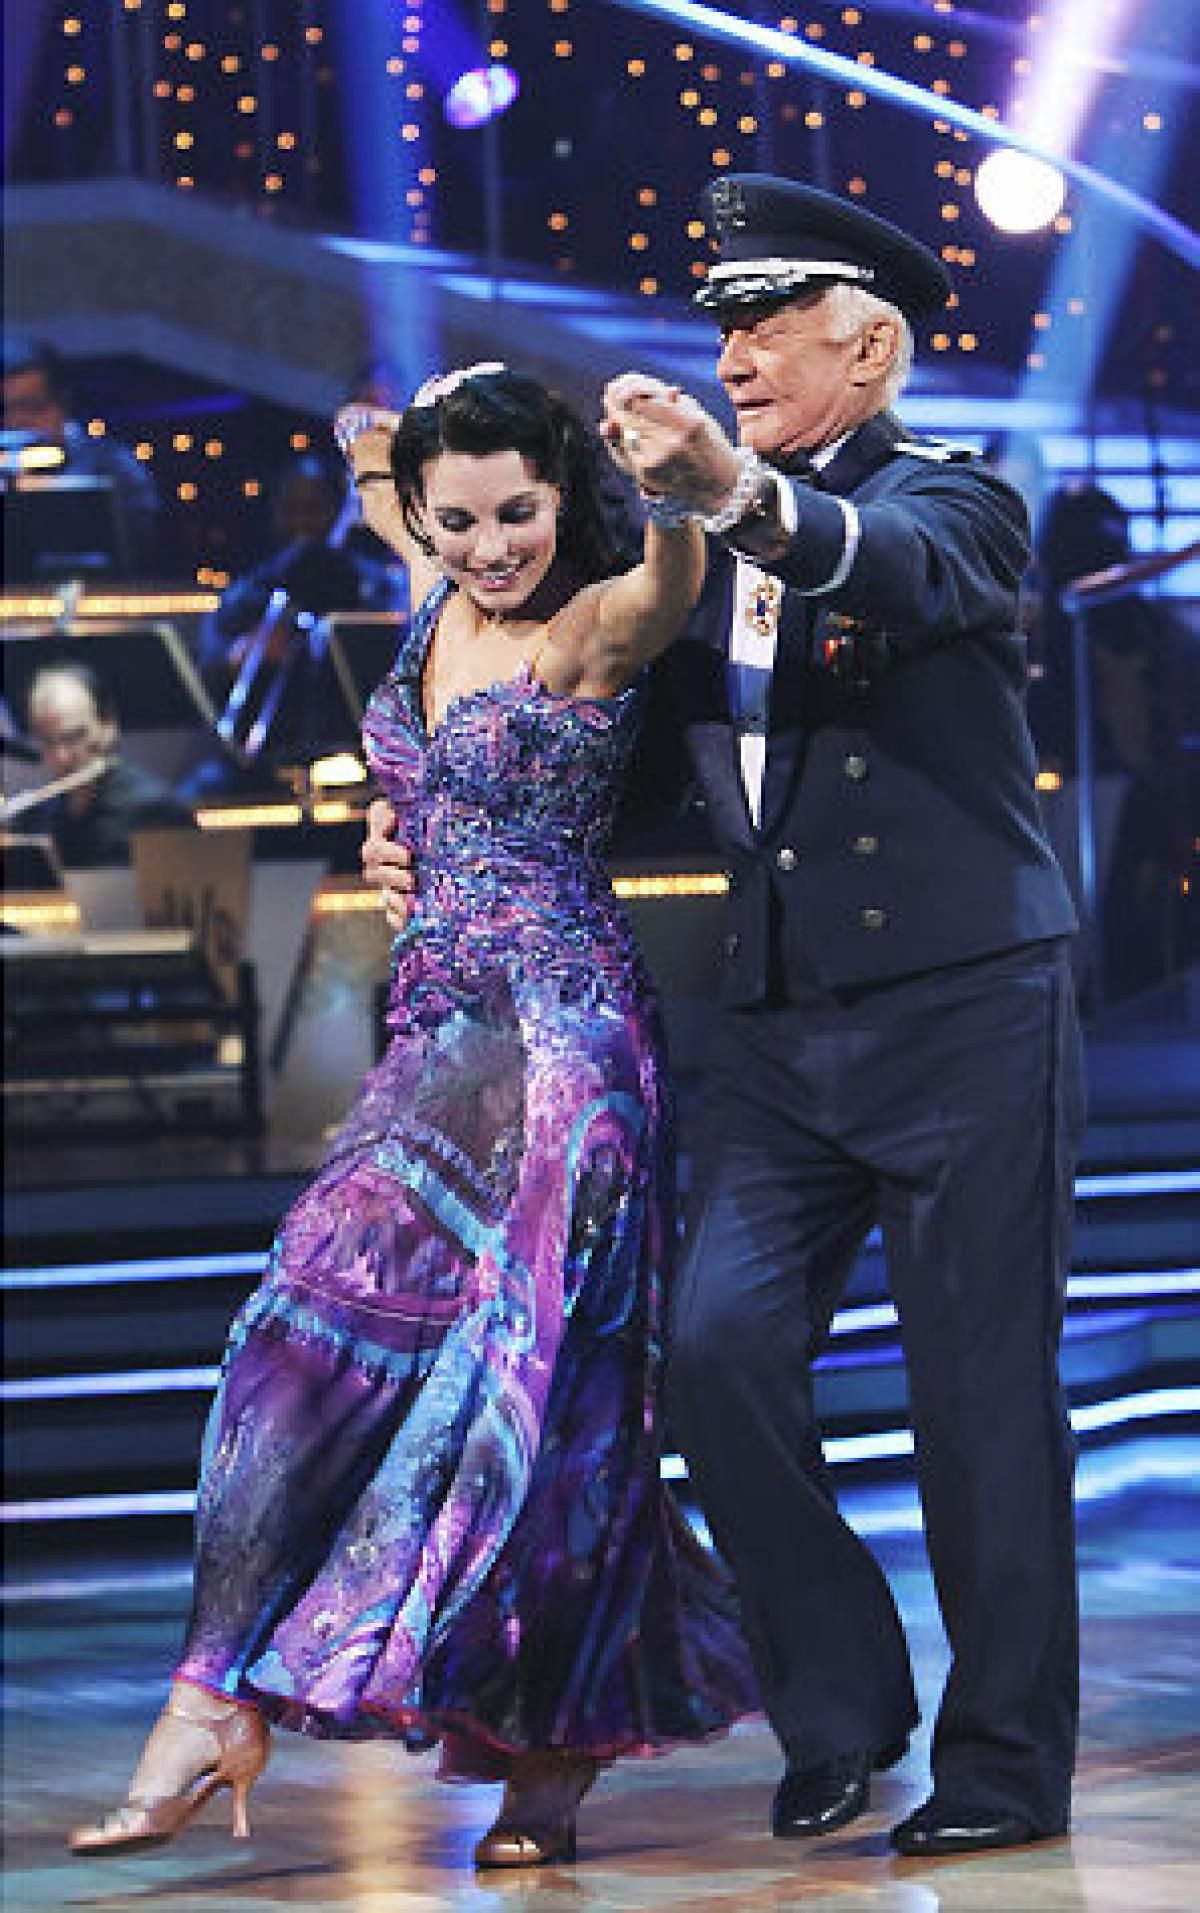 Dwts Season 10 Spring 2010 Buzz Aldrin And Ashly Costa Formal Dresses Long Fashion Formal Dresses